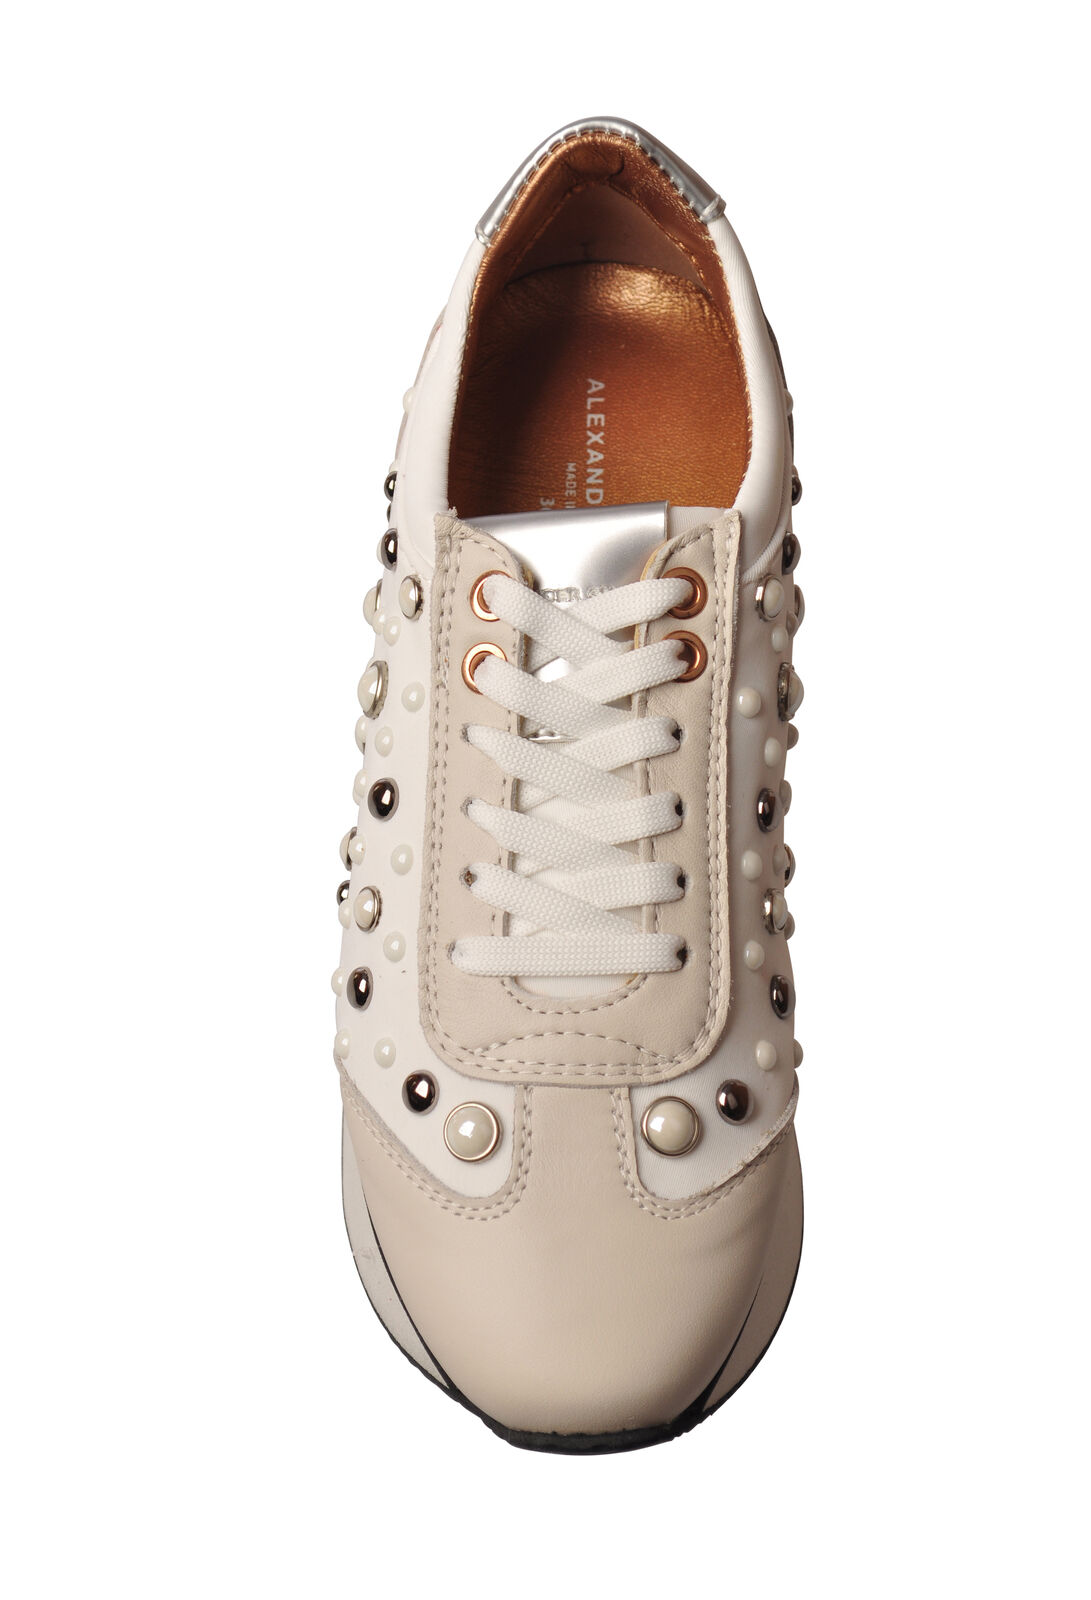 Alexander Smith - shoes-Sneakers shoes-Sneakers shoes-Sneakers low - Woman - White - 5265416F184057 518691